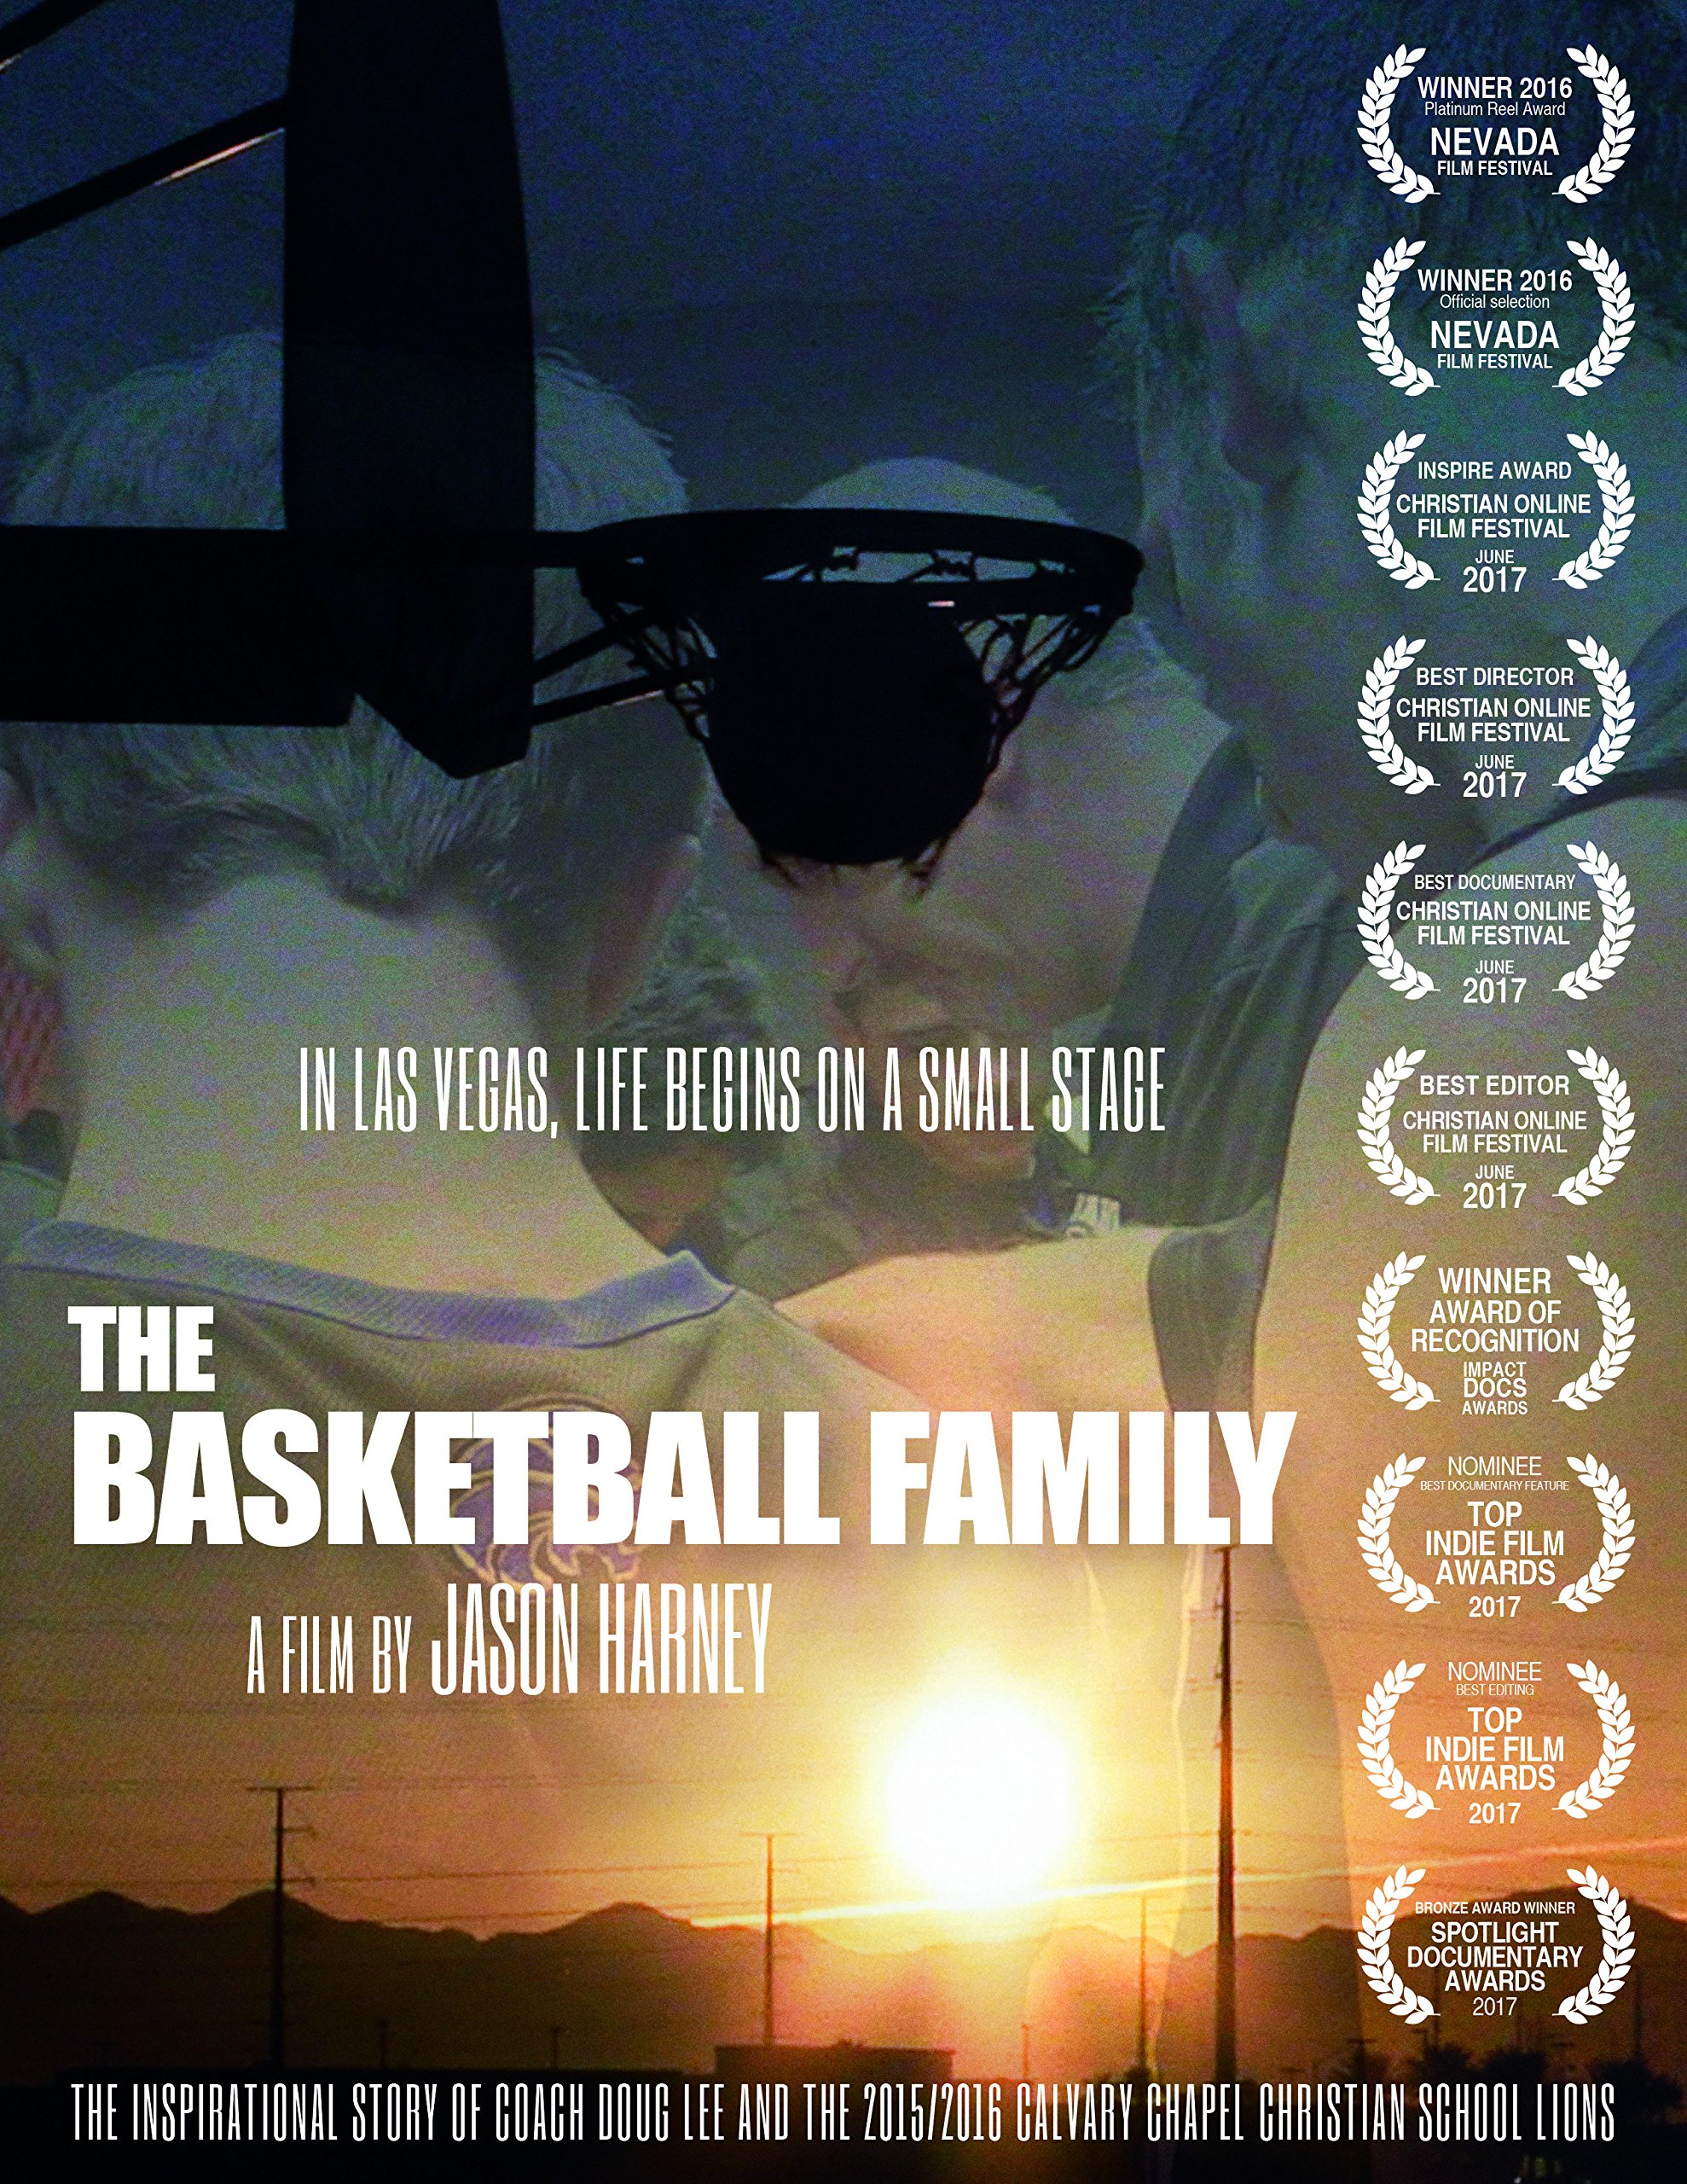 The Basketball Family